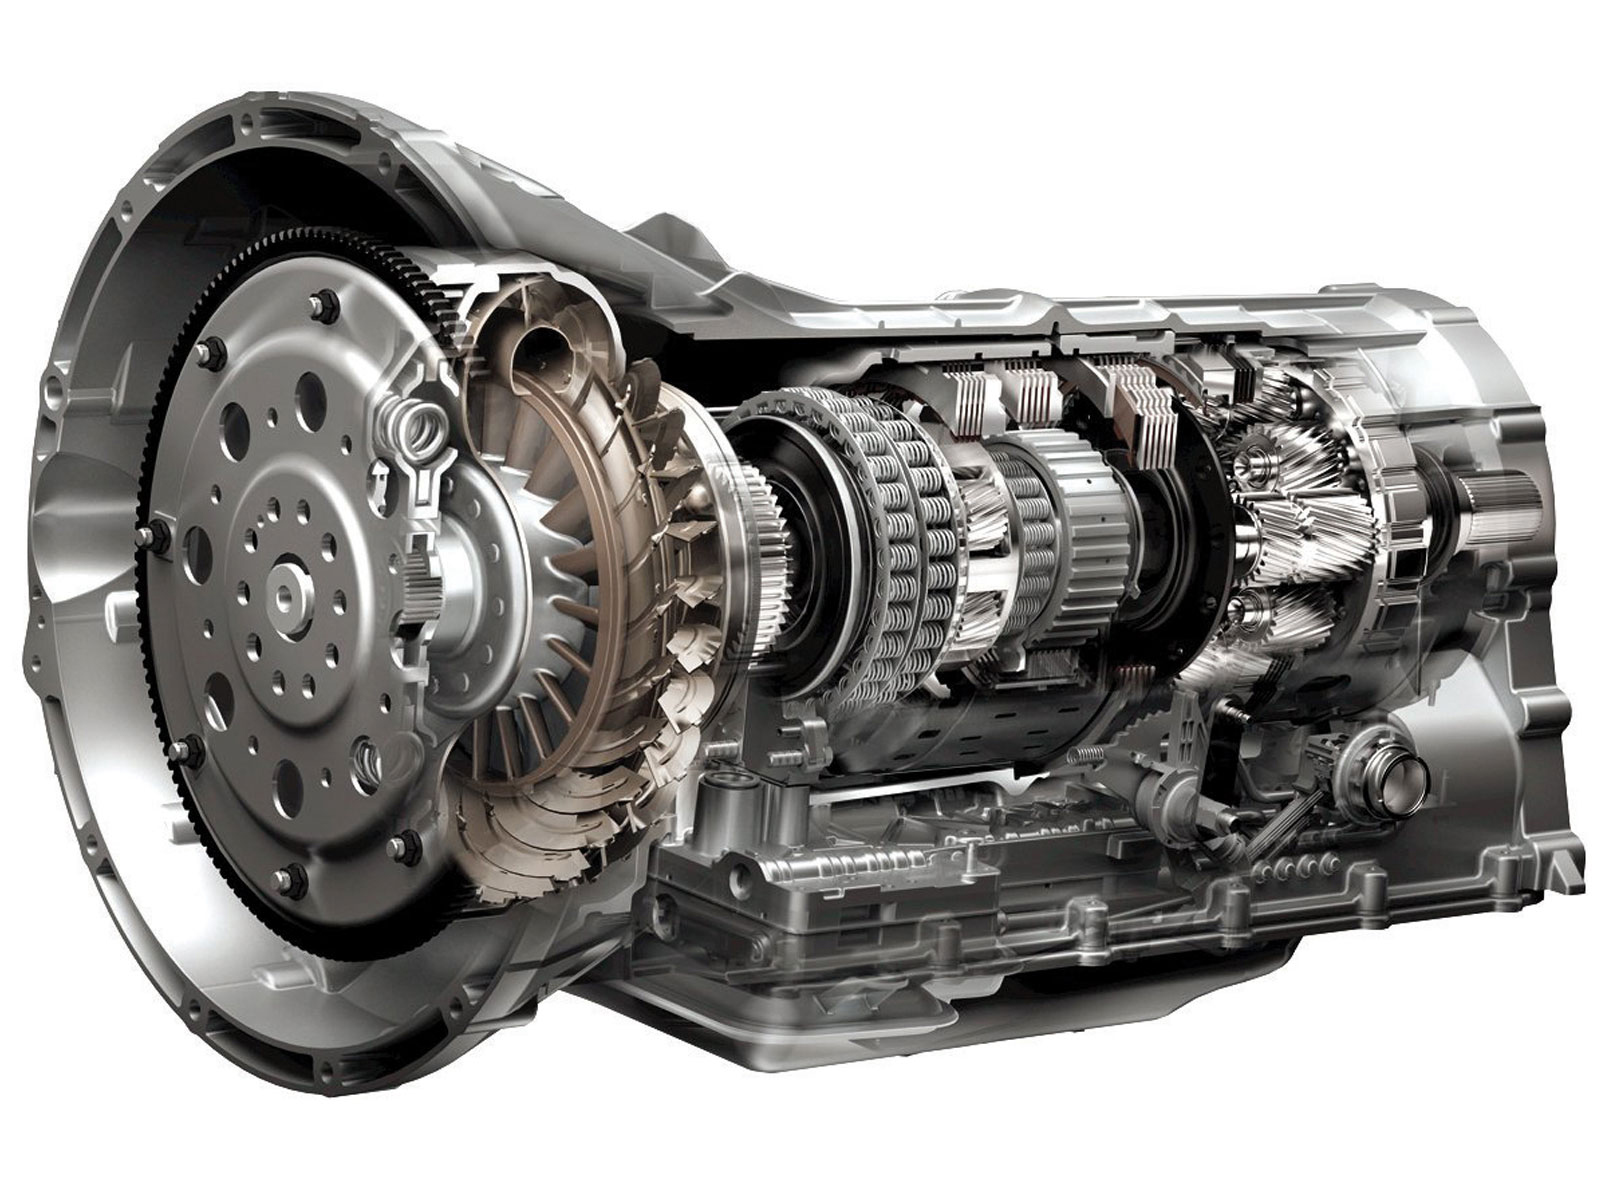 Gearbox automatic or mechanic - which is better 61